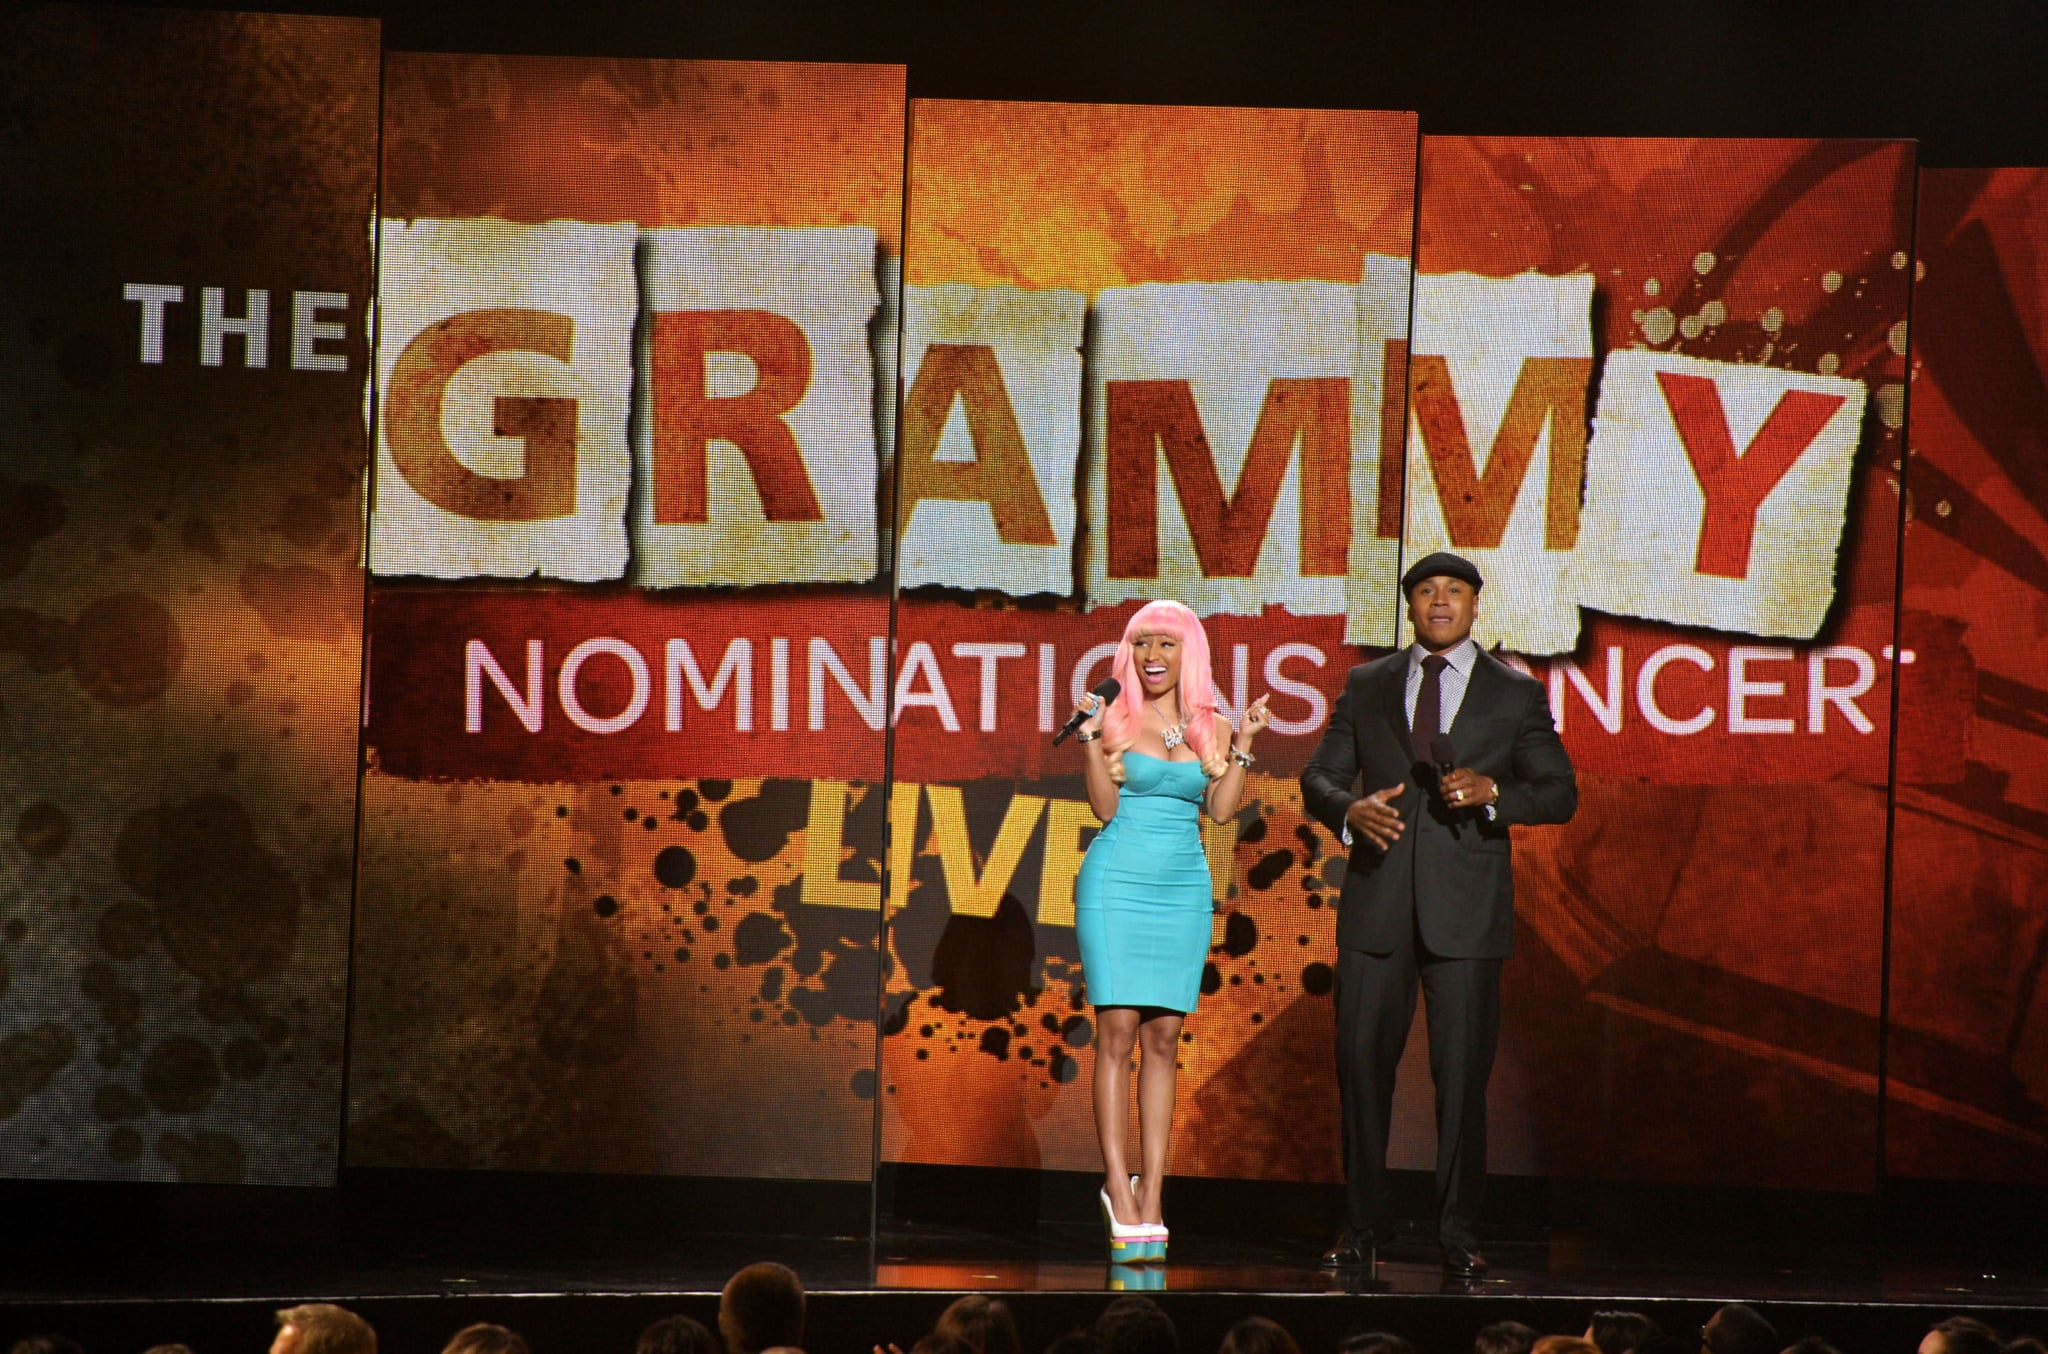 Kanye West and Adele Lead the Talented Pack of This Year's Grammy Nominees